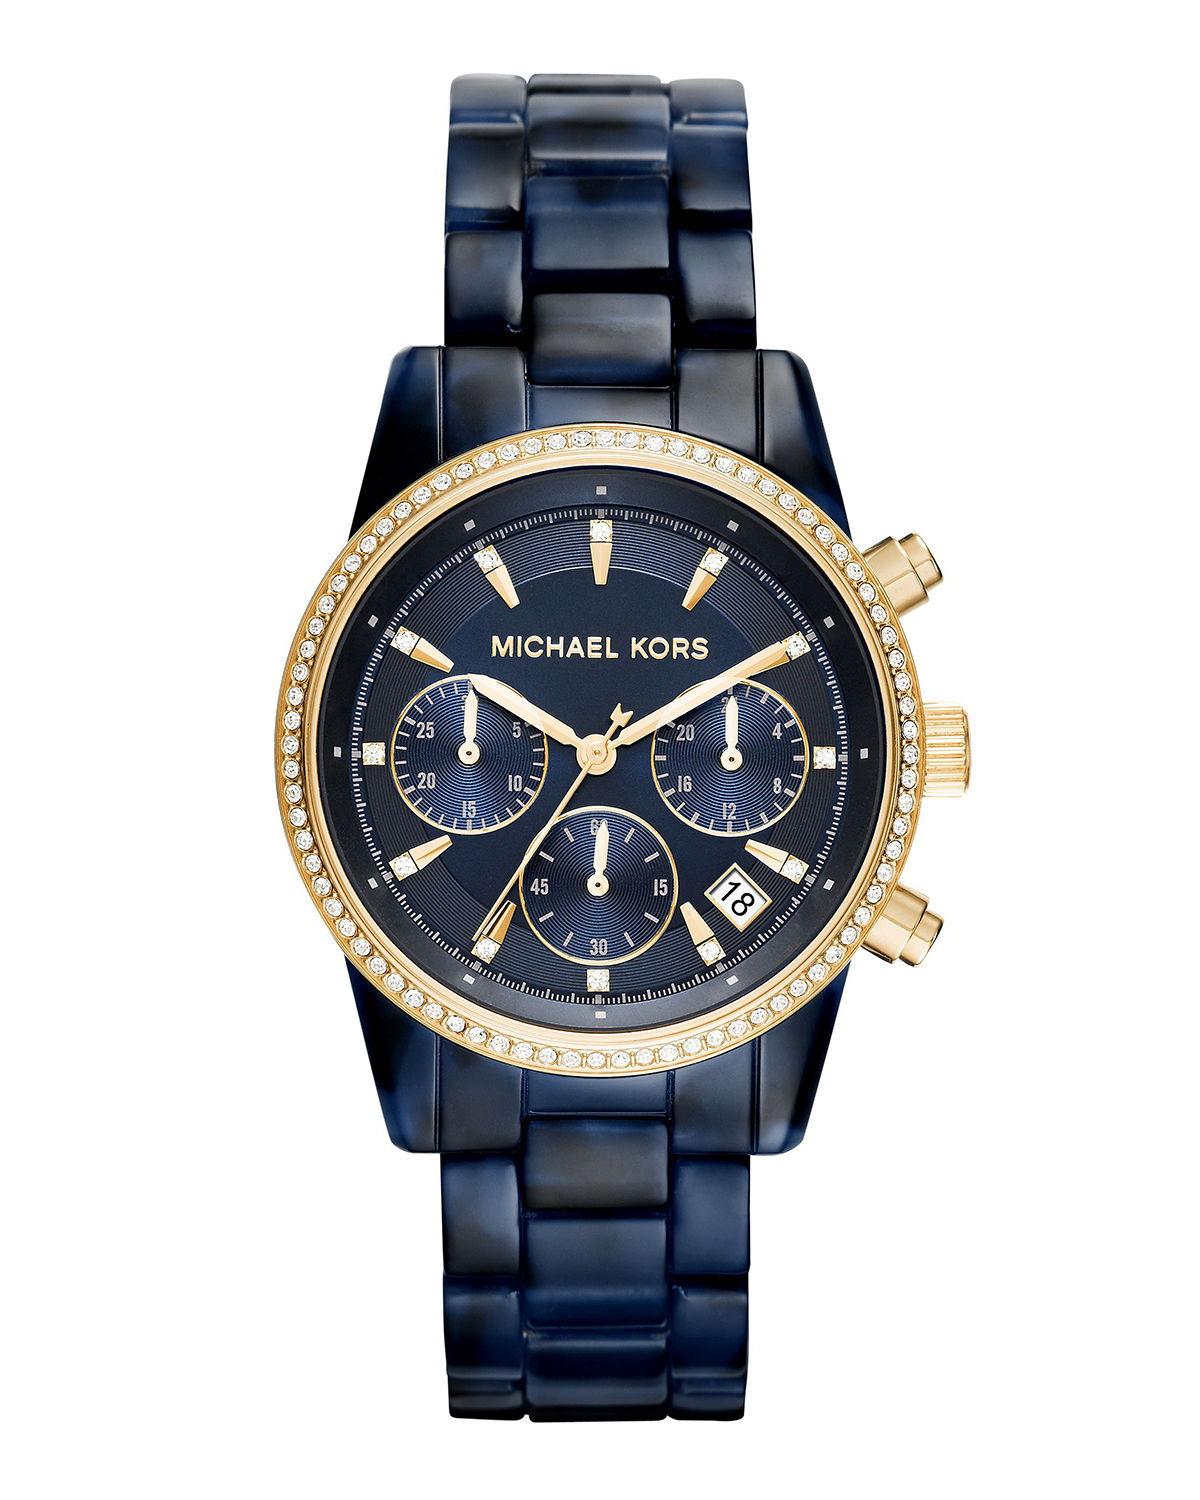 Ritz 37mm Acetate Chronograph Watch